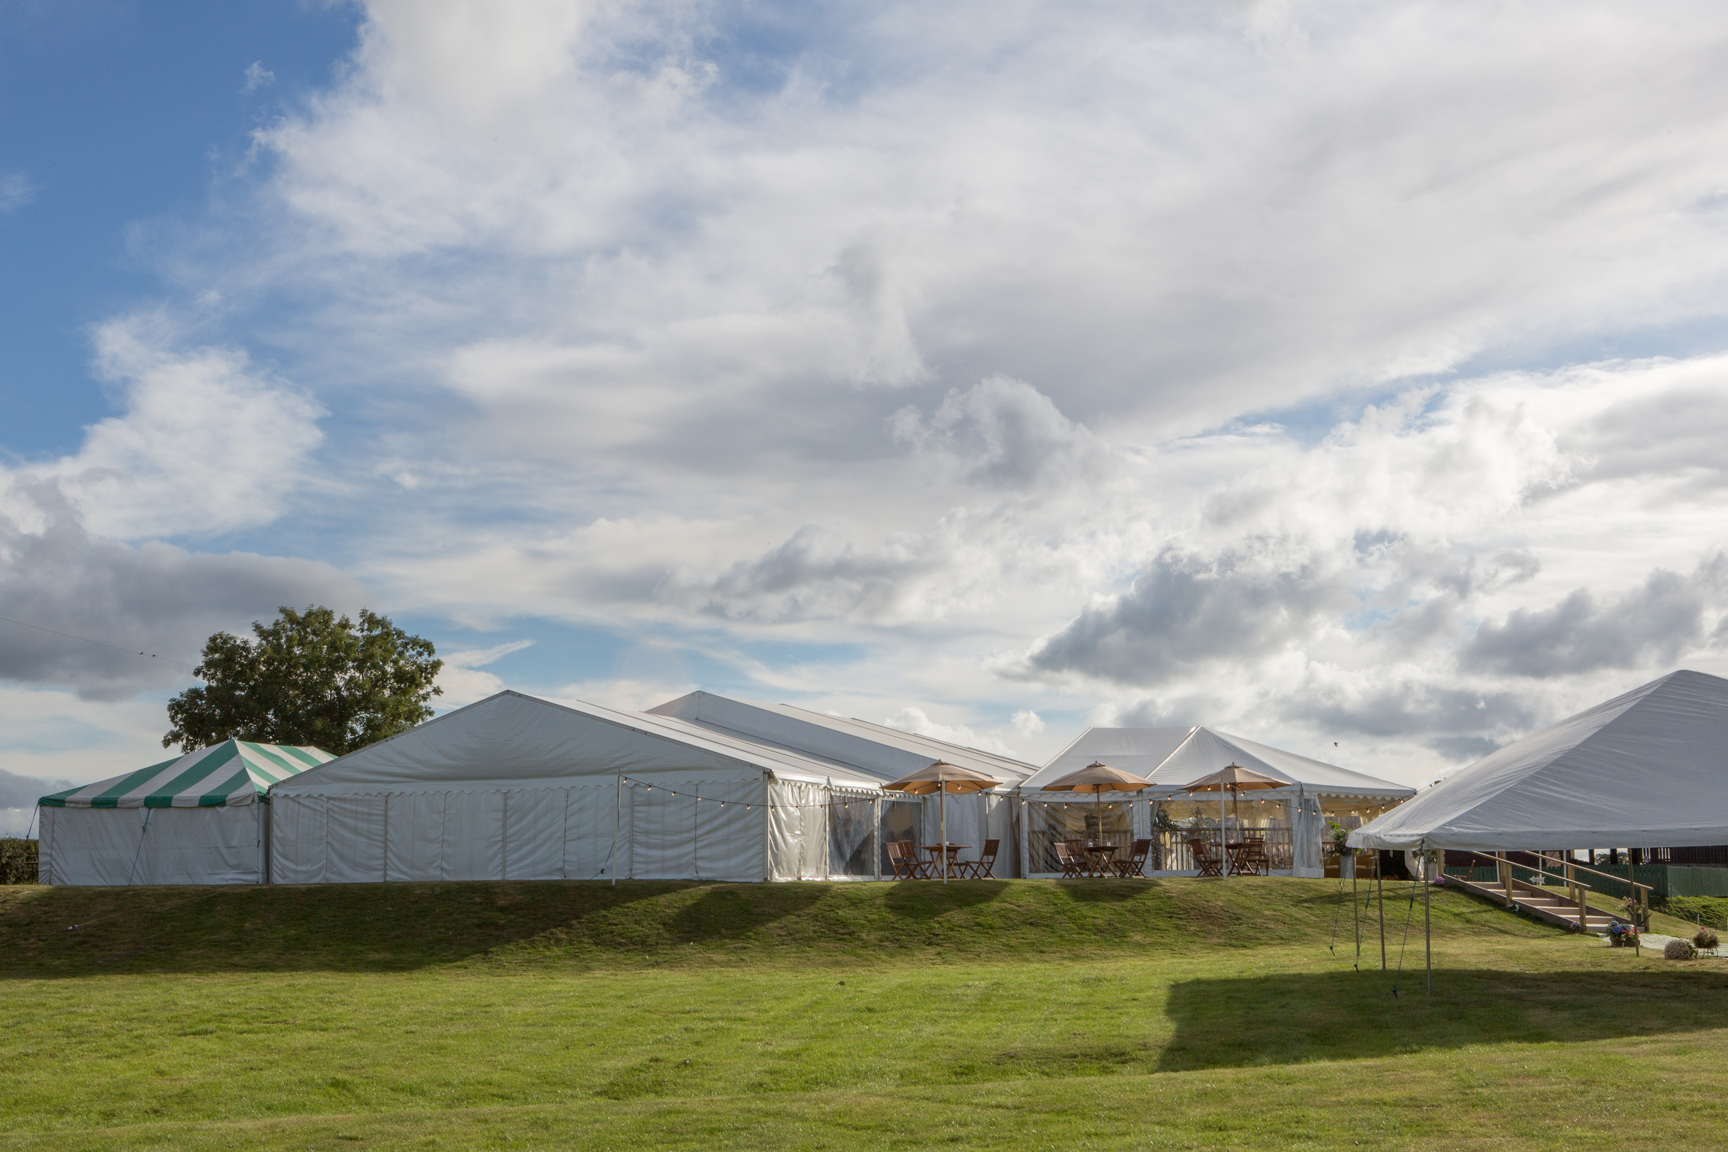 Tents and Large marquees in the sun